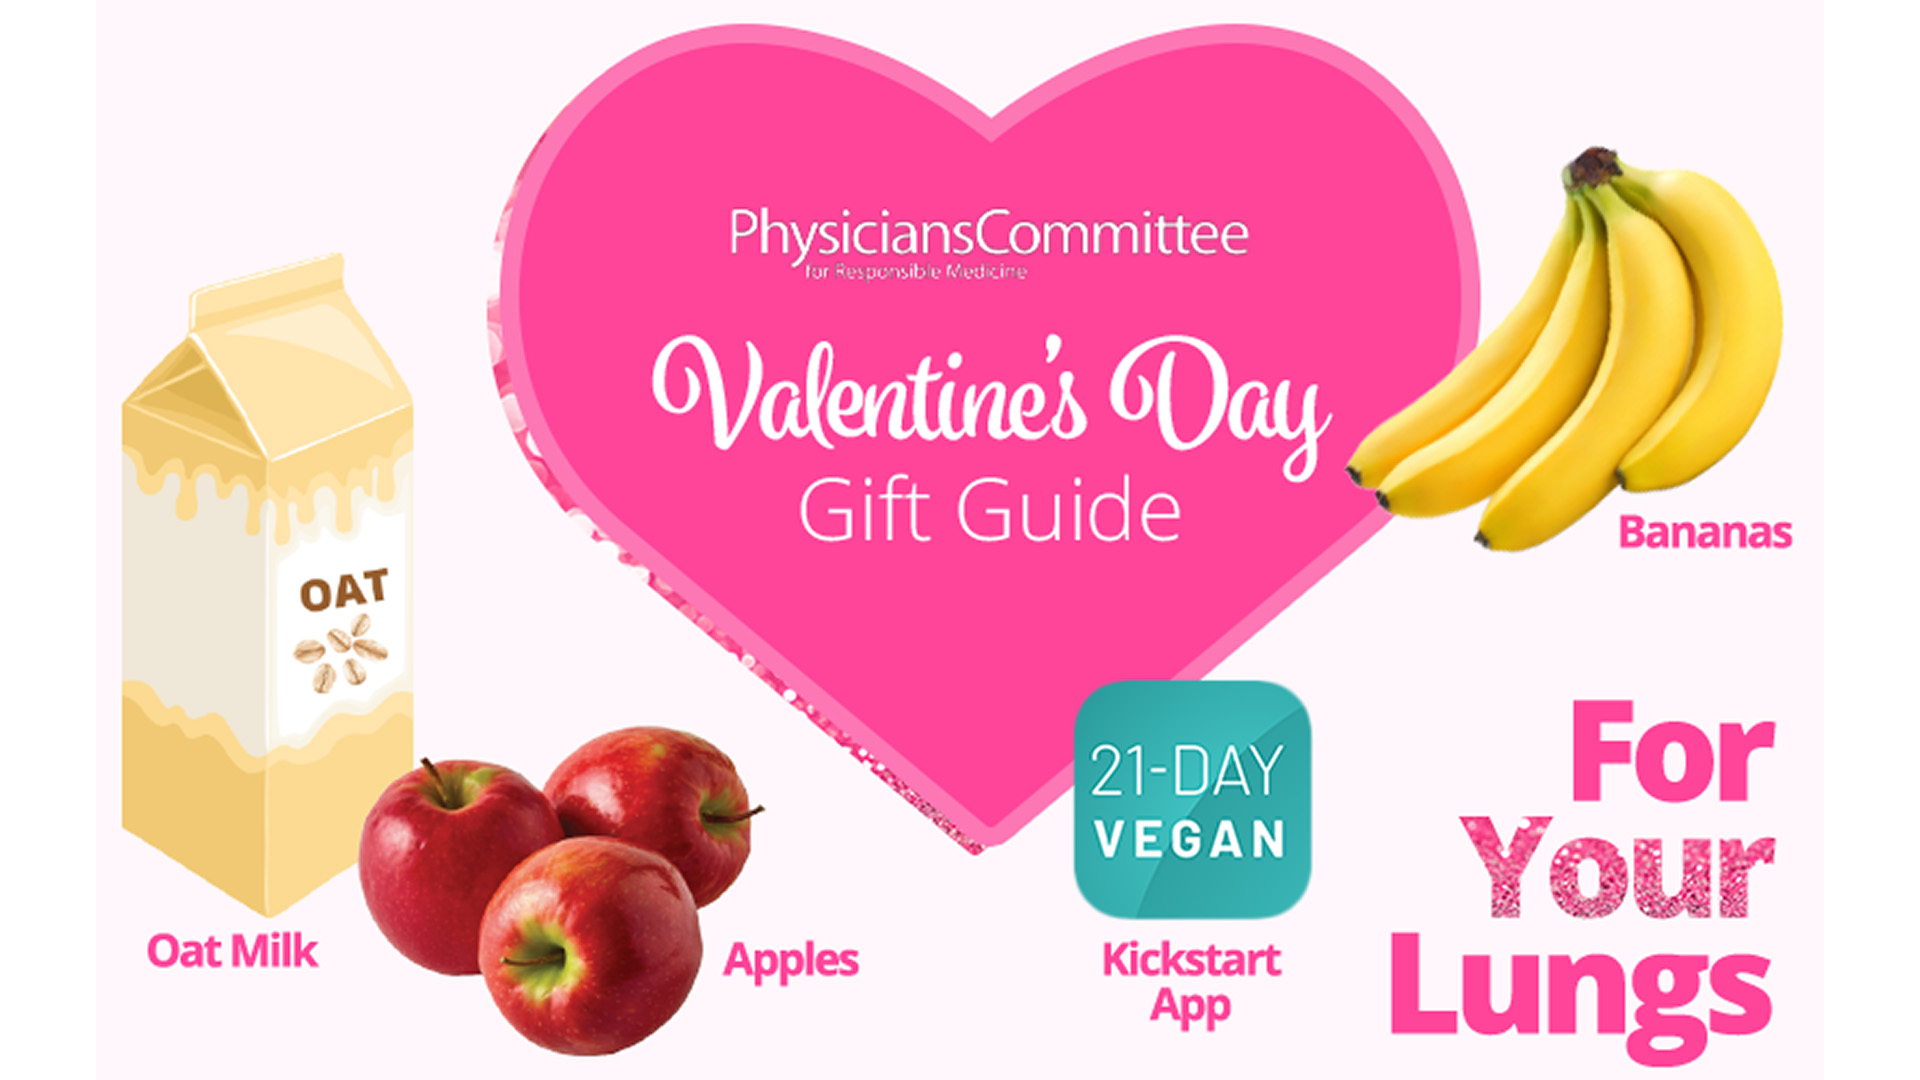 PCRM Valentine's Gift Guide